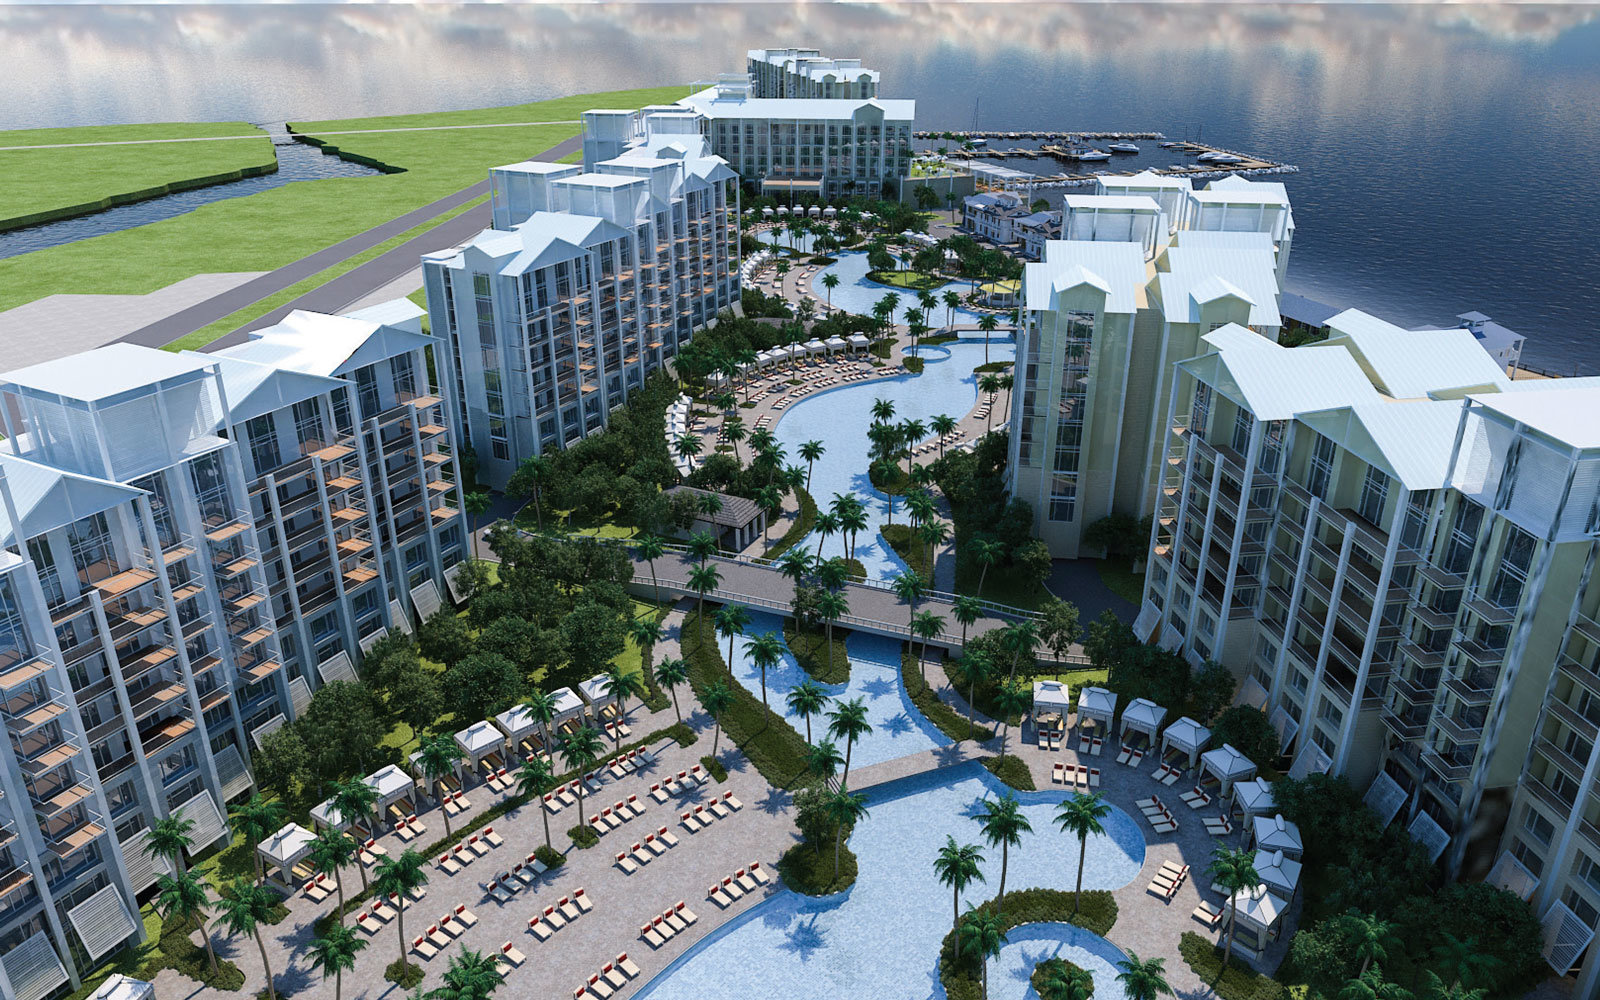 This Airline S Massive New Resort Will Feature North